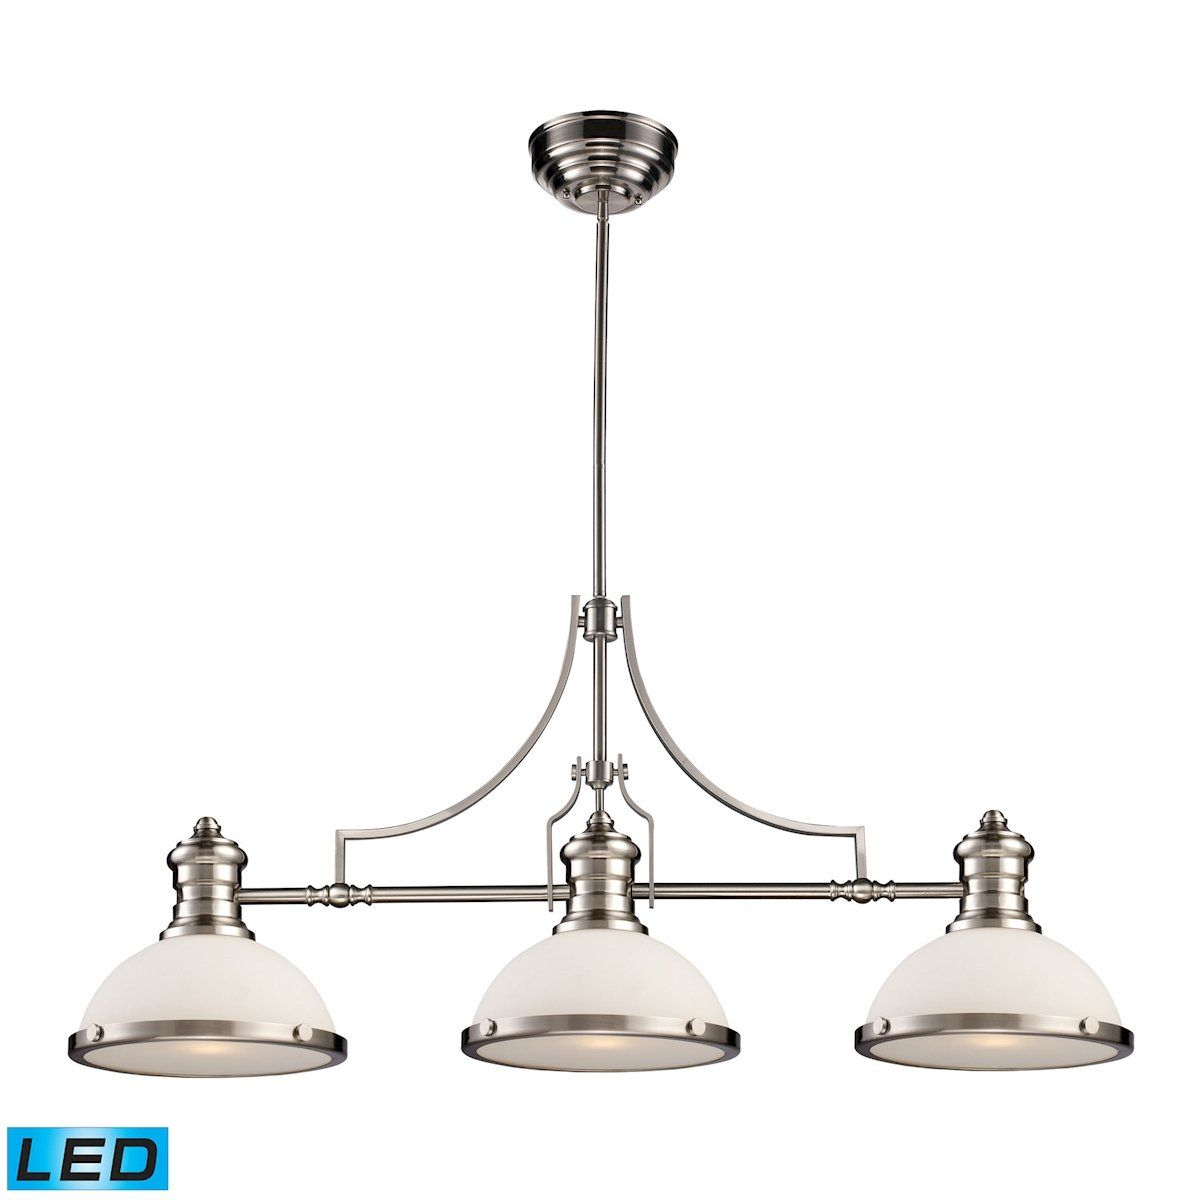 Elk lighting chadwick light led billiard in satin nickel and white